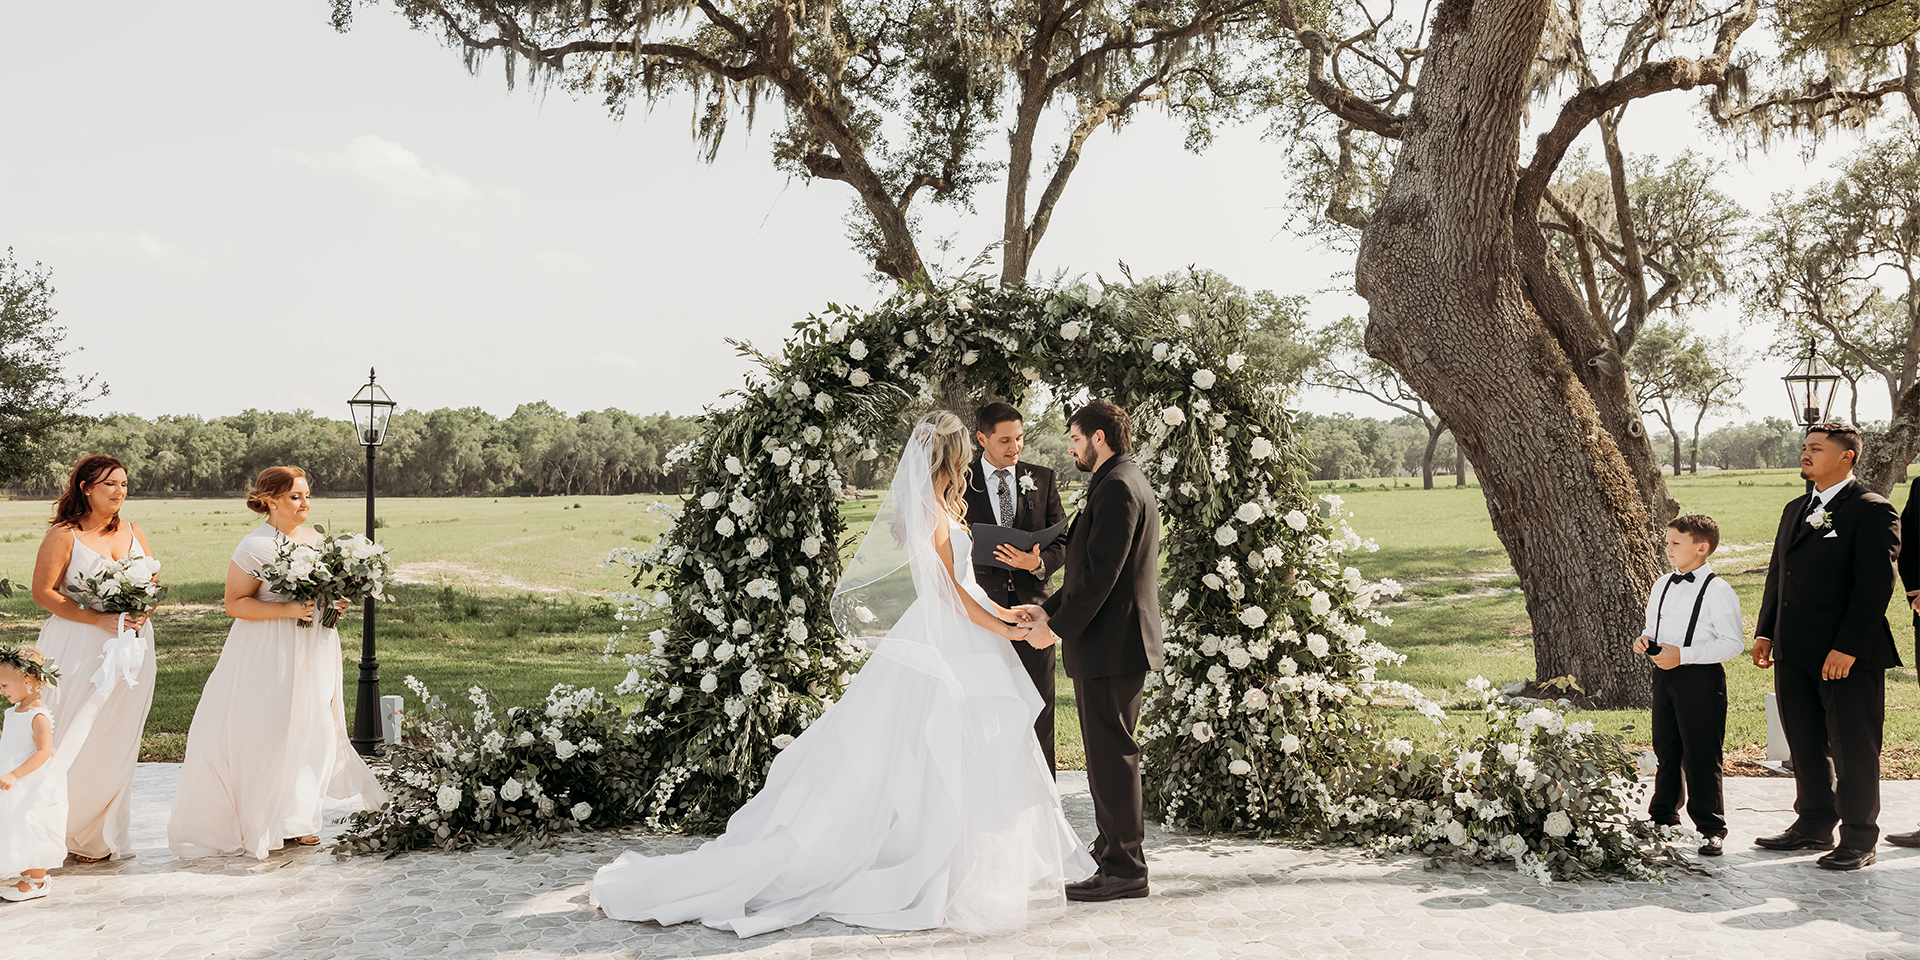 Photo of a Wedding Ceremony Under the Oaks